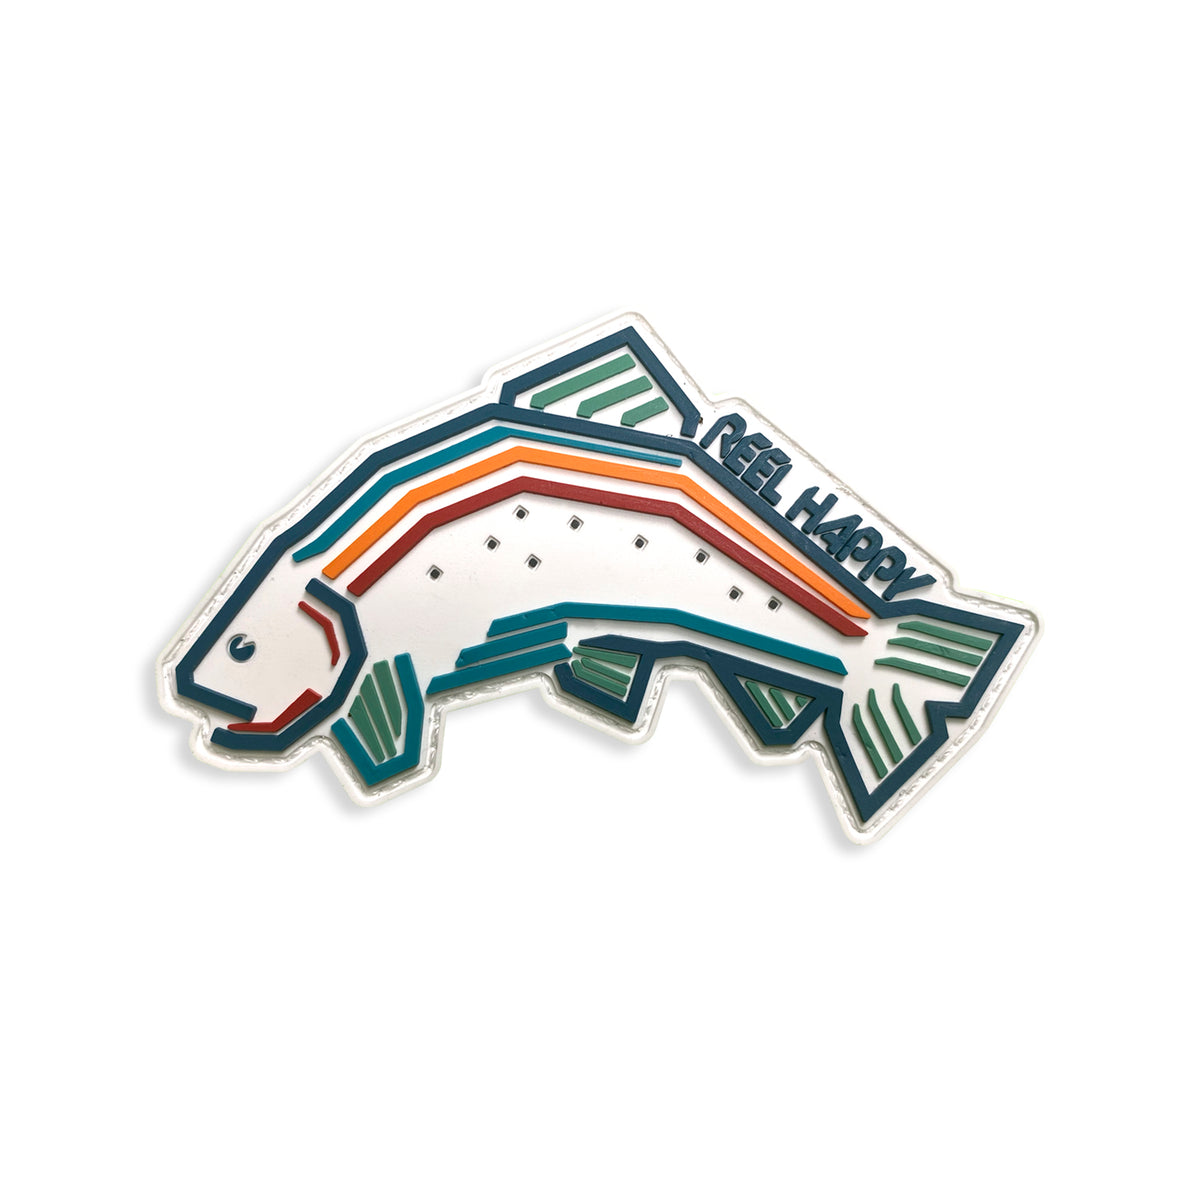 Trout Blender Morale Patch - Reel Happy Co